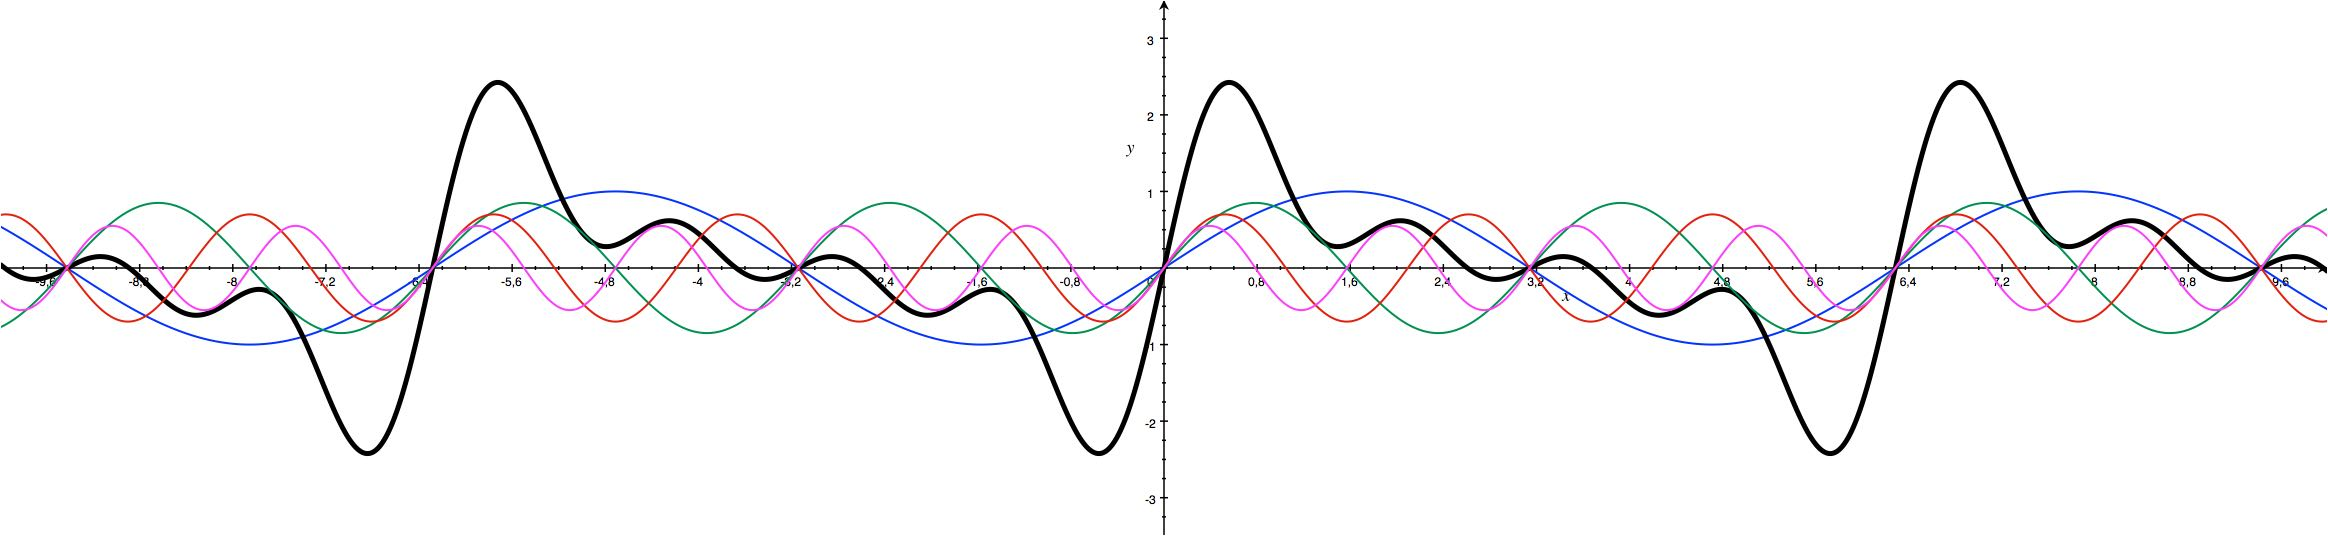 The first 4 partials and the resulting tone curve